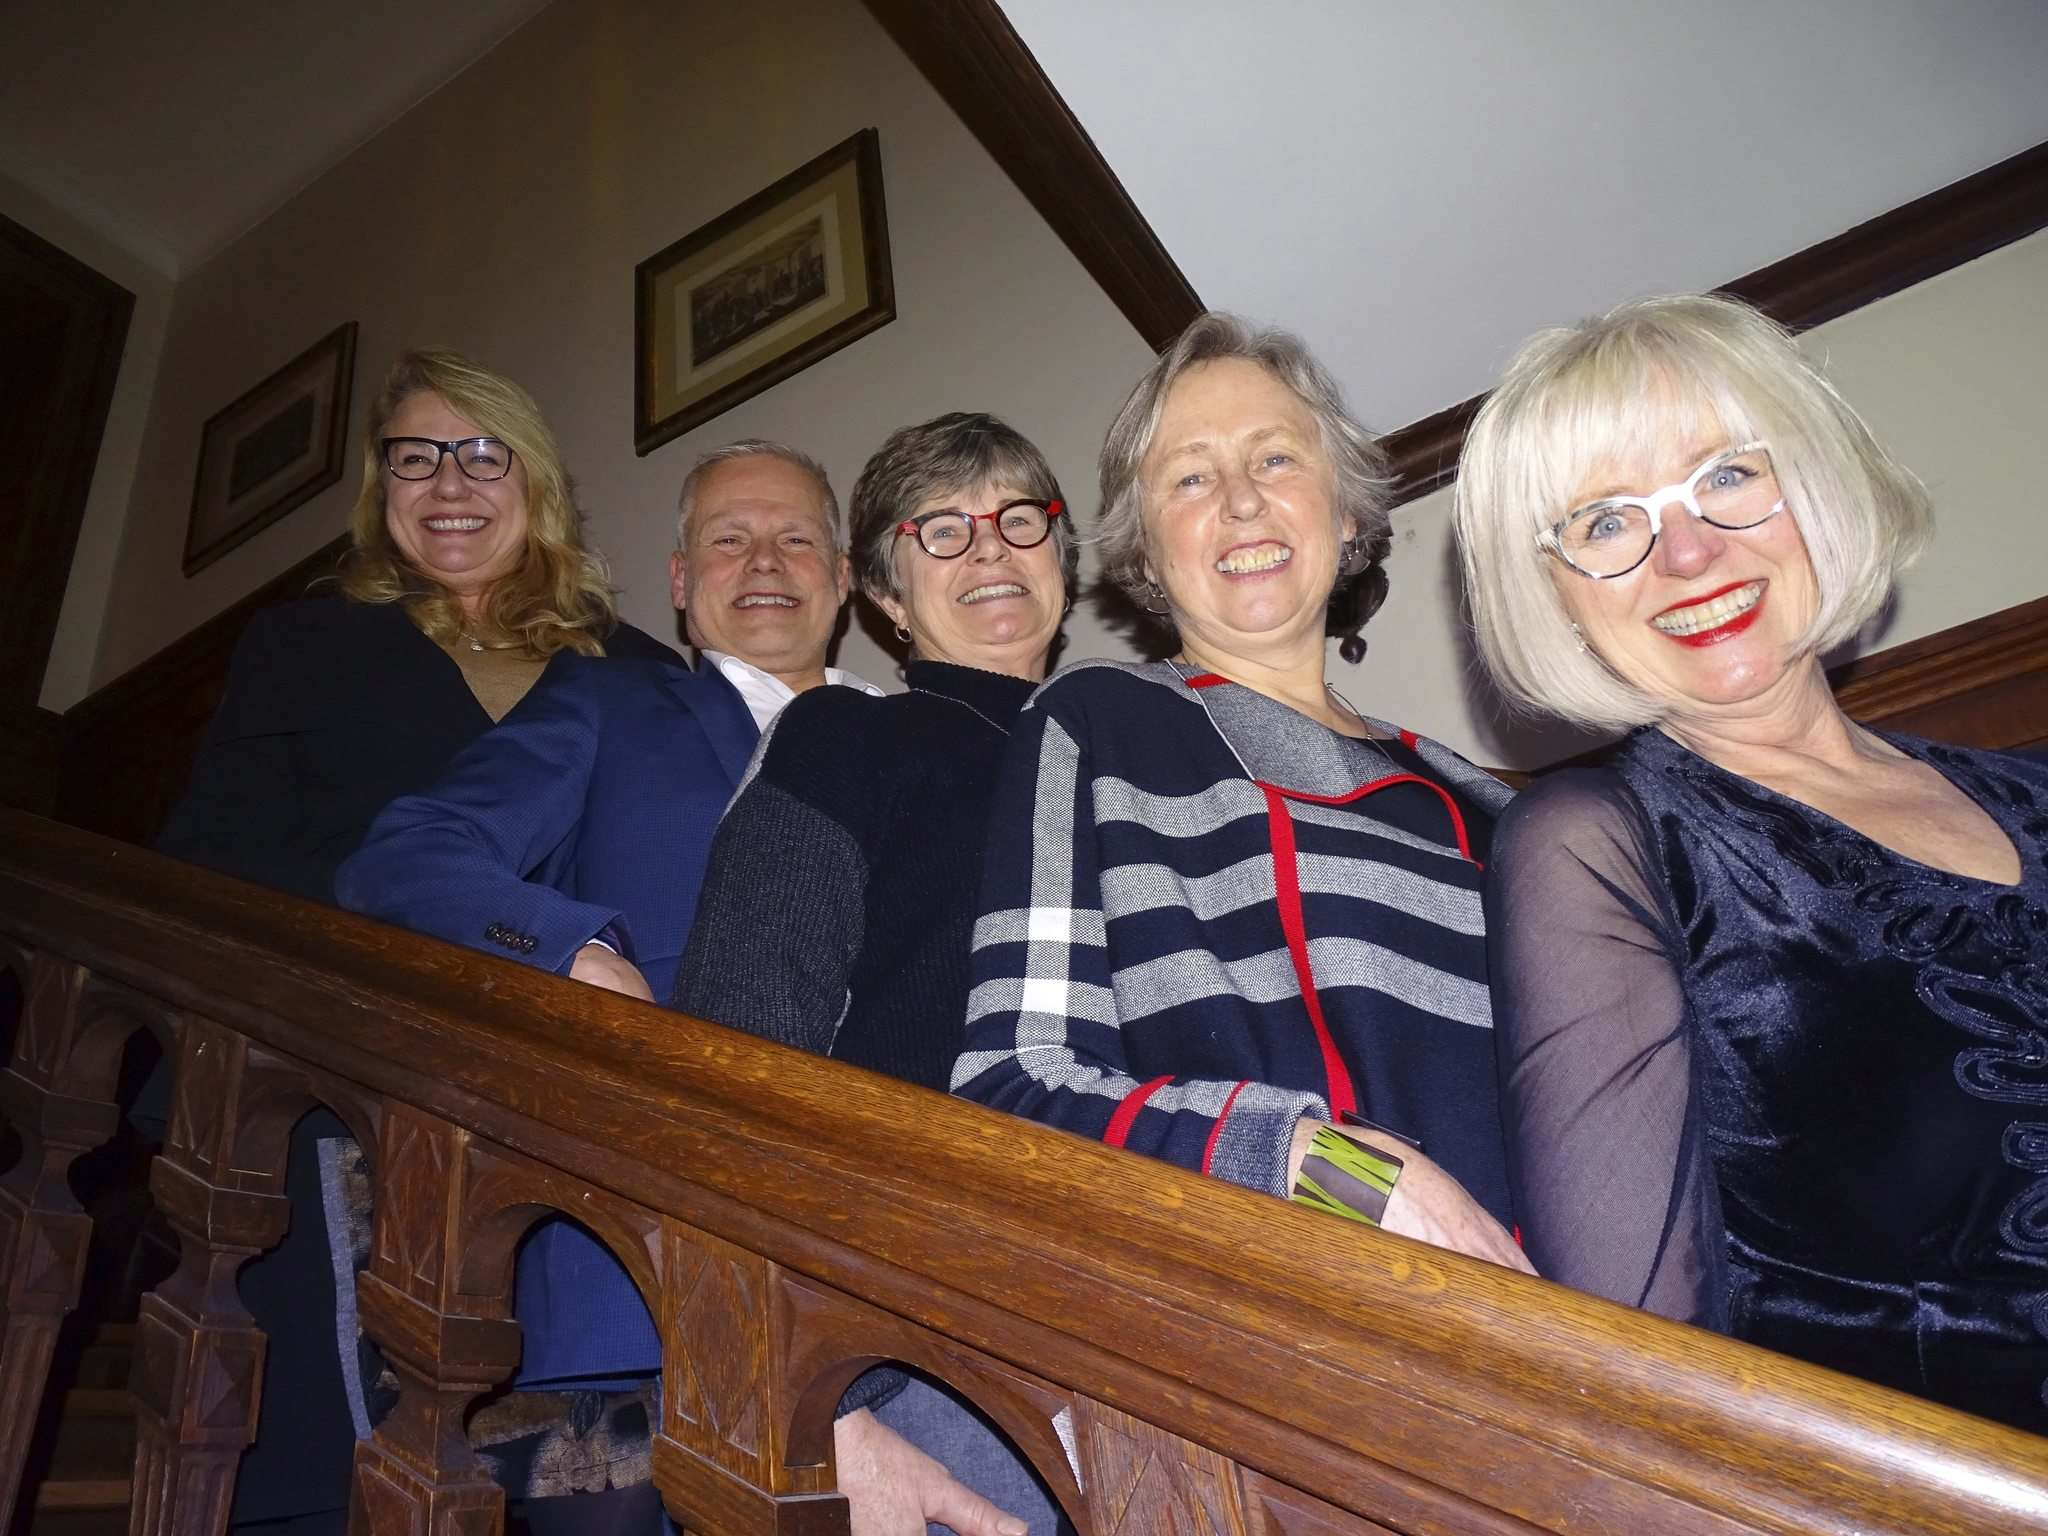 MAUREEN SCURFIELD / WINNIPEG FREE PRESS</p><p>Attendees at the Heritage Winnipeg event included Cindy Tugwell (from left), Chip Batten, Christine Skene, Barbara Myers and Lisa Gardewine.</p>